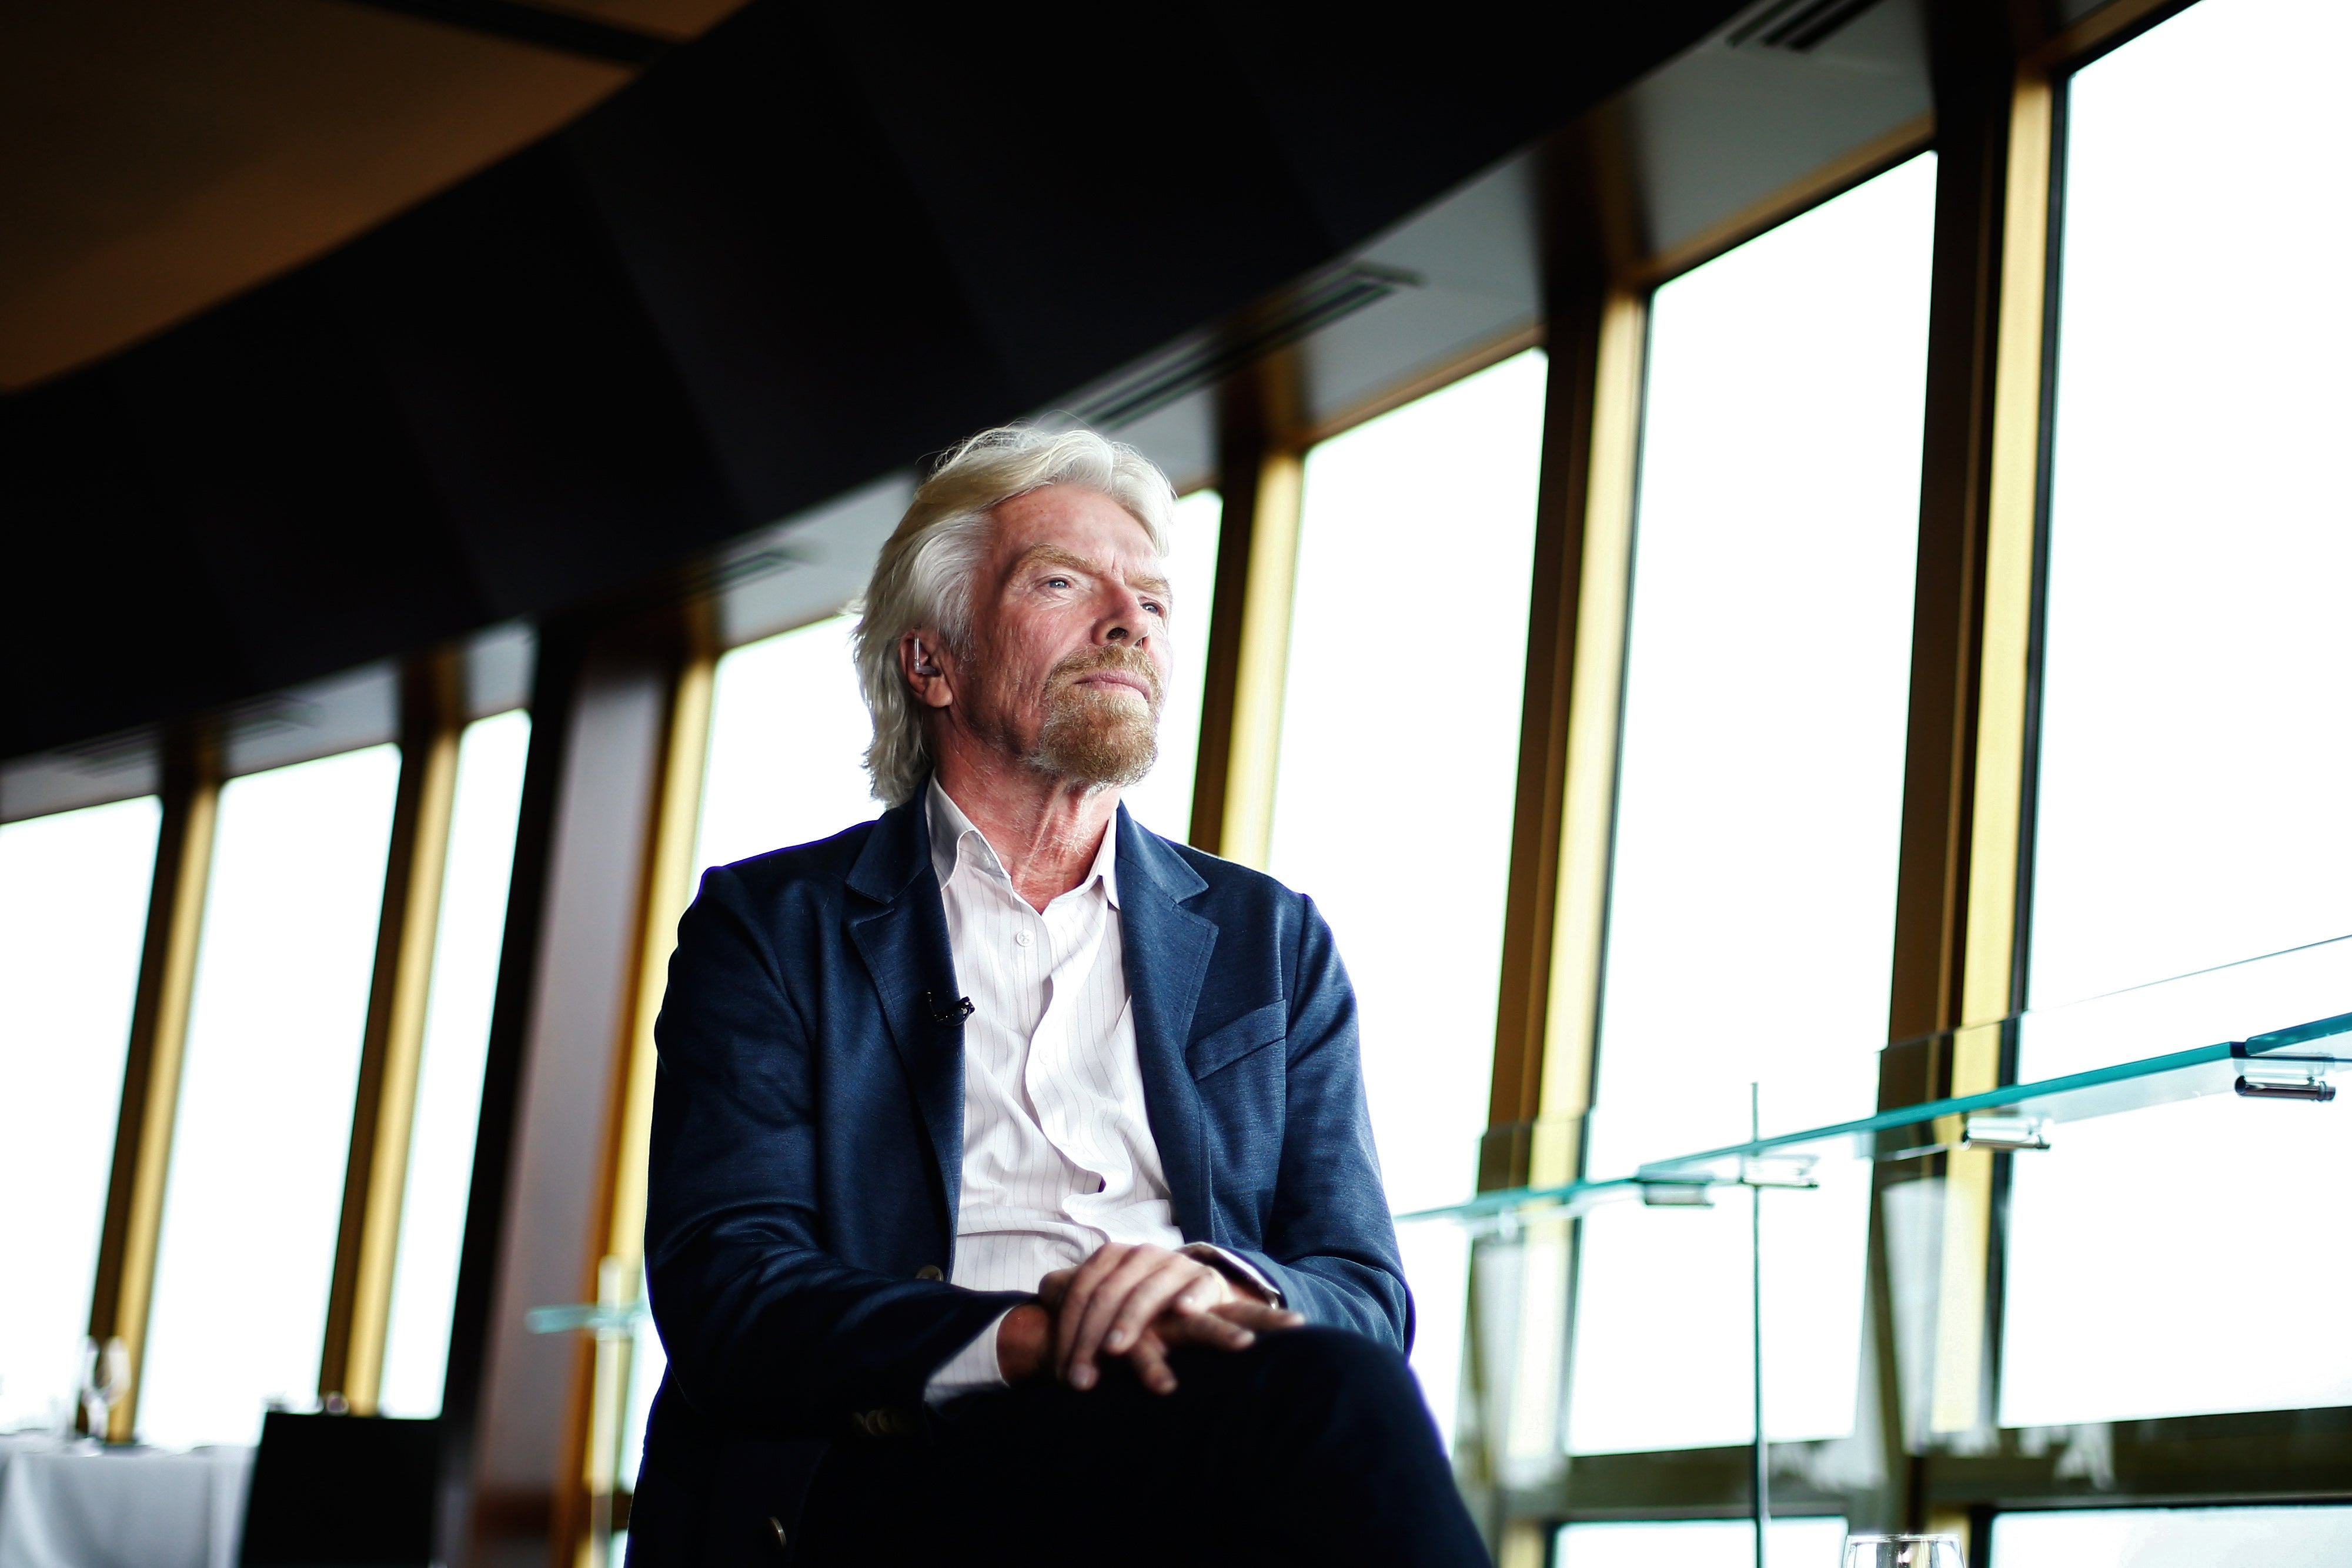 Richard Branson via Getty Images / Bloomberg